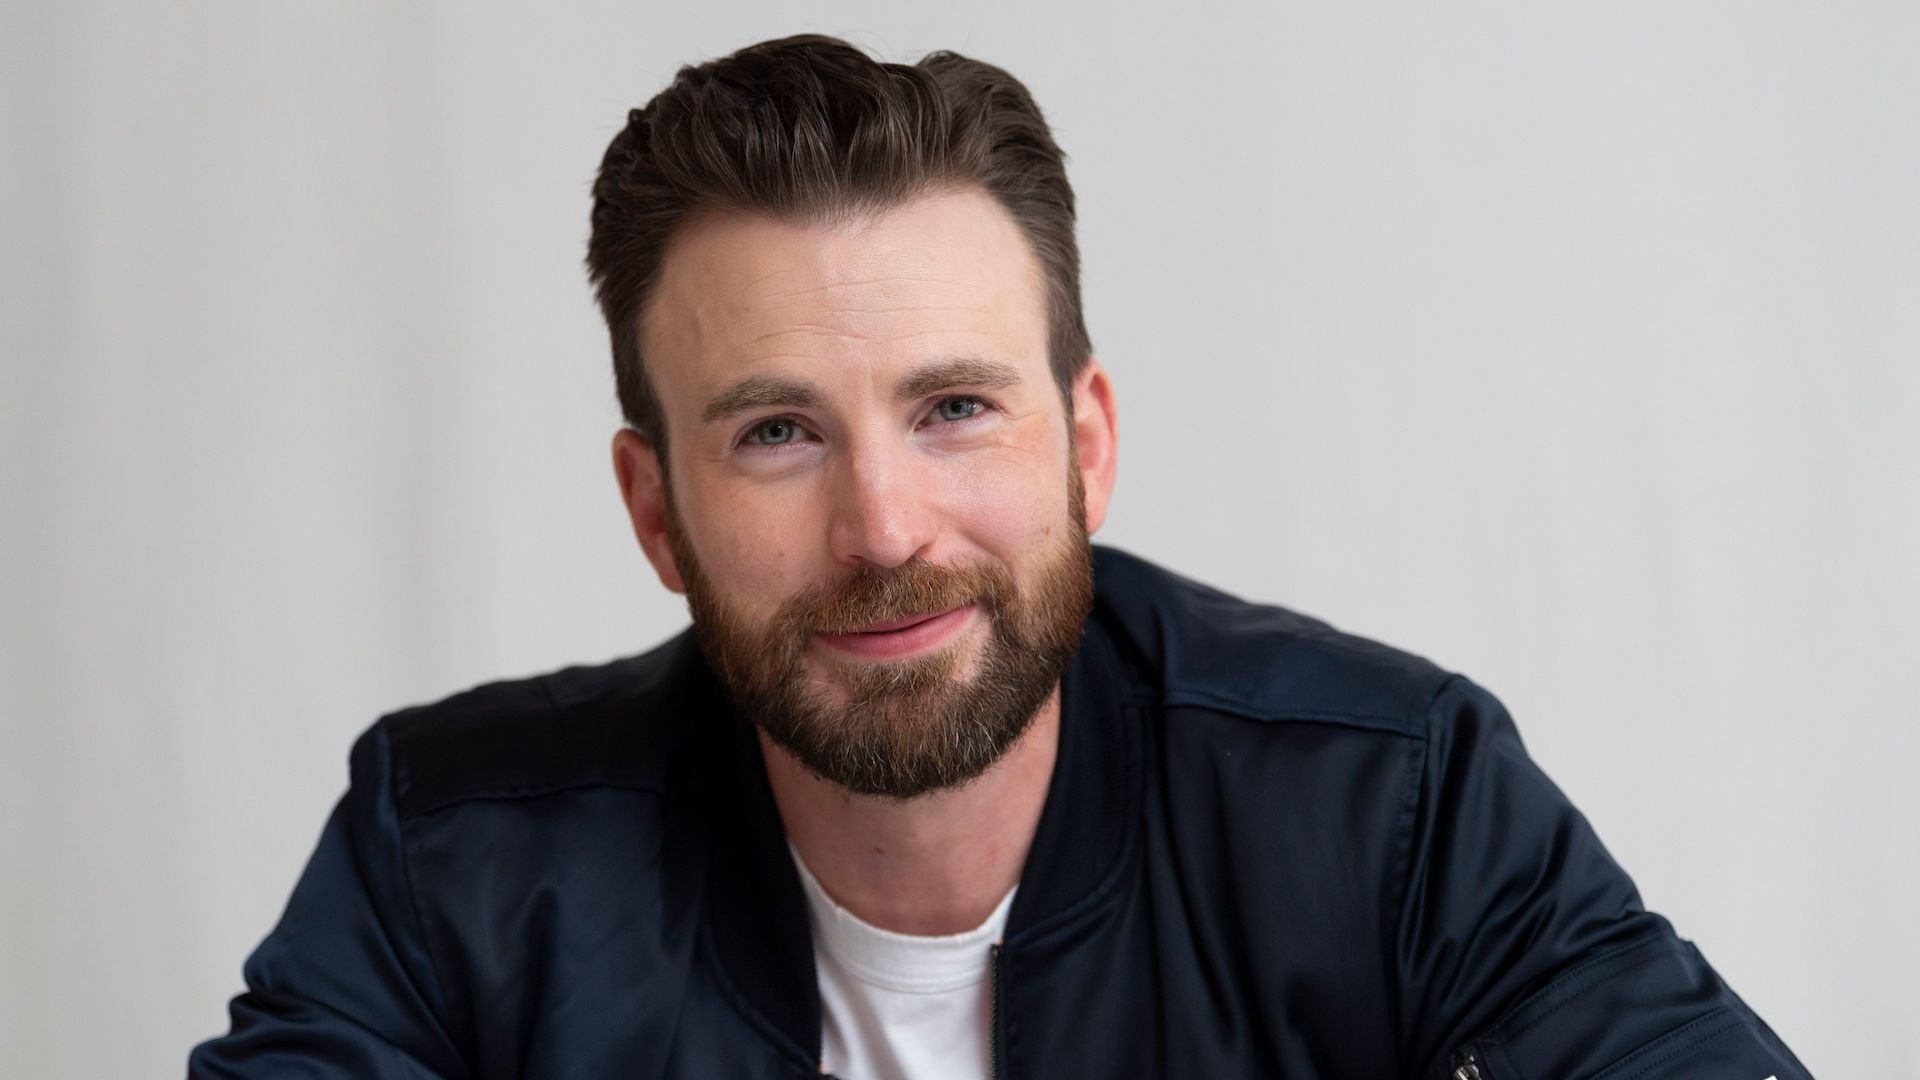 How Rich Is Chris Evans as He Turns 40?